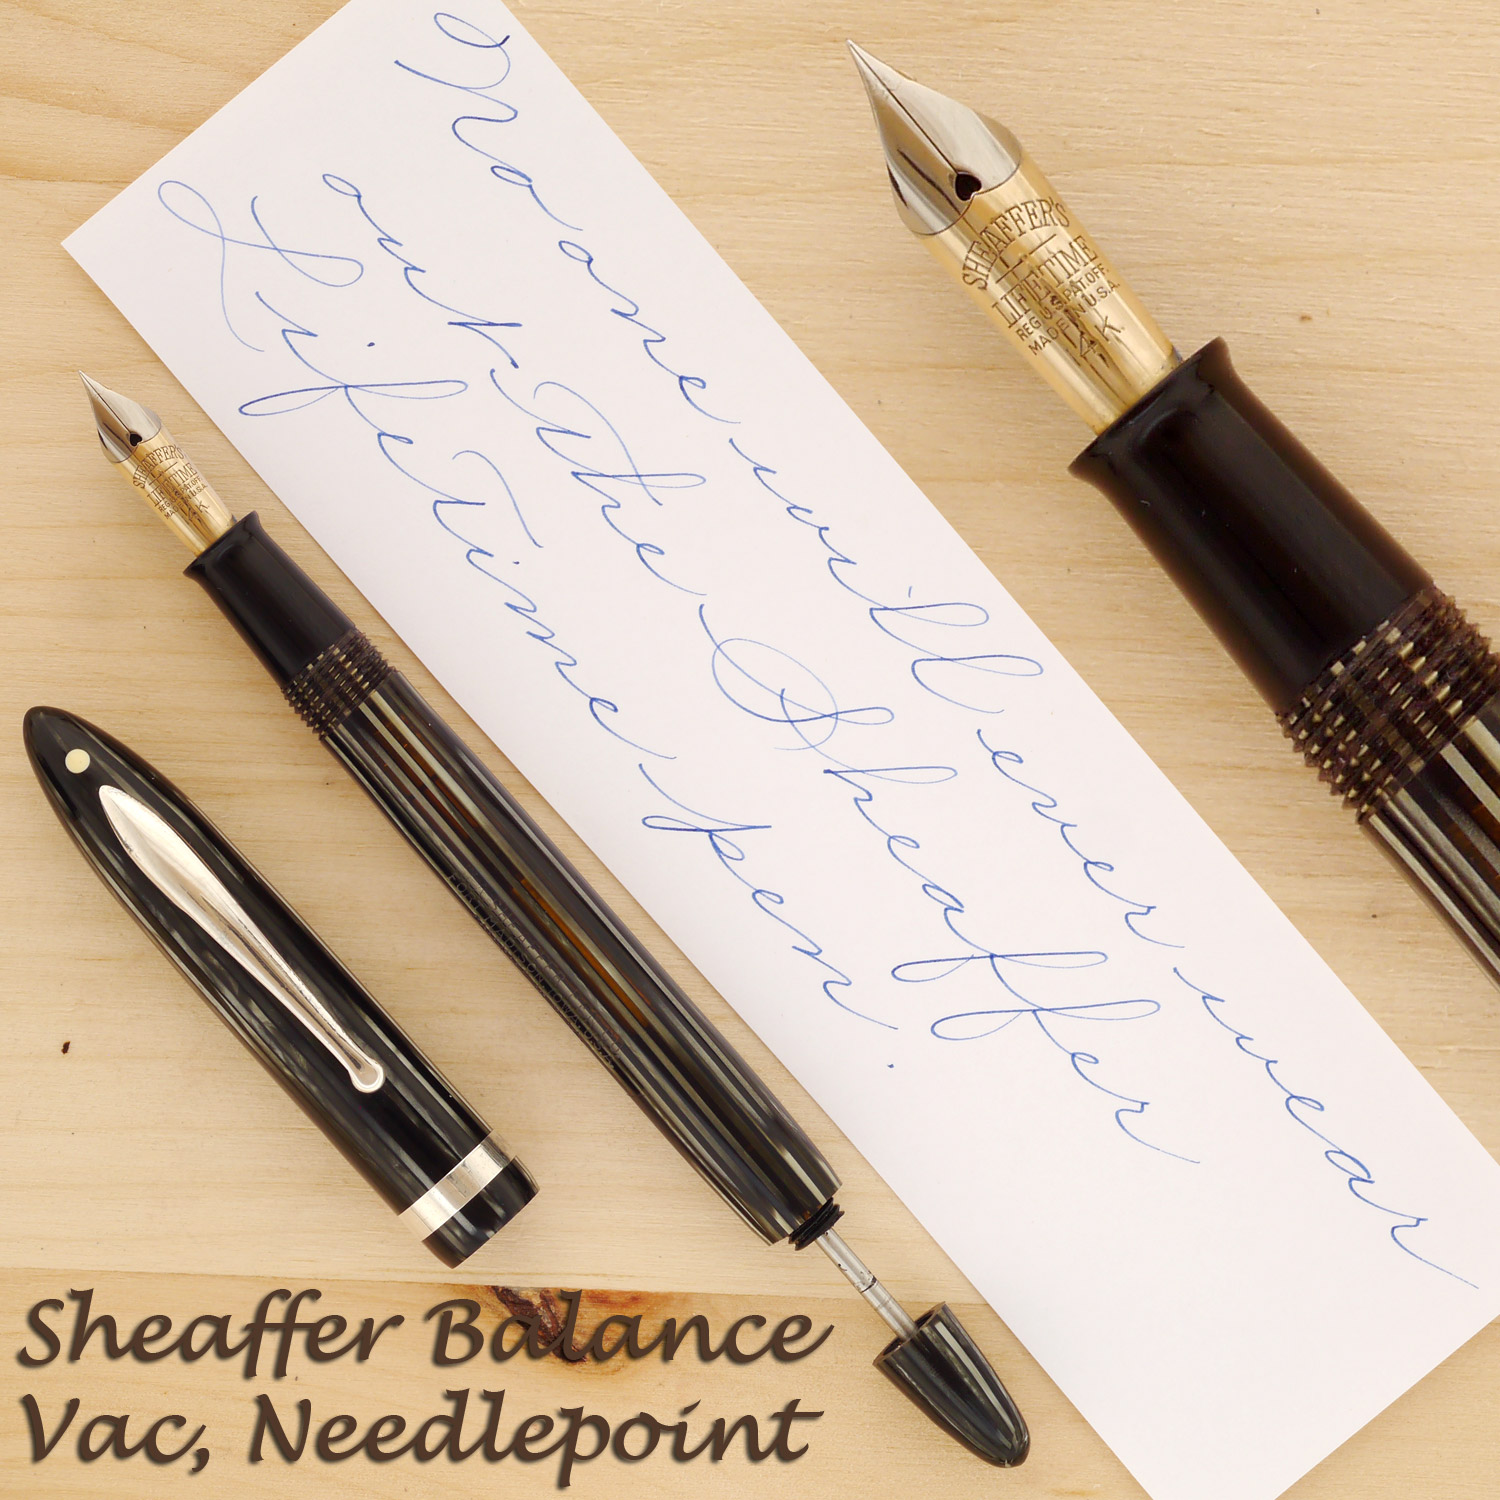 Sheaffer Balance Vac, Gray Pearl, Needlepoint, with the cap off and the plunger rod partially retracted